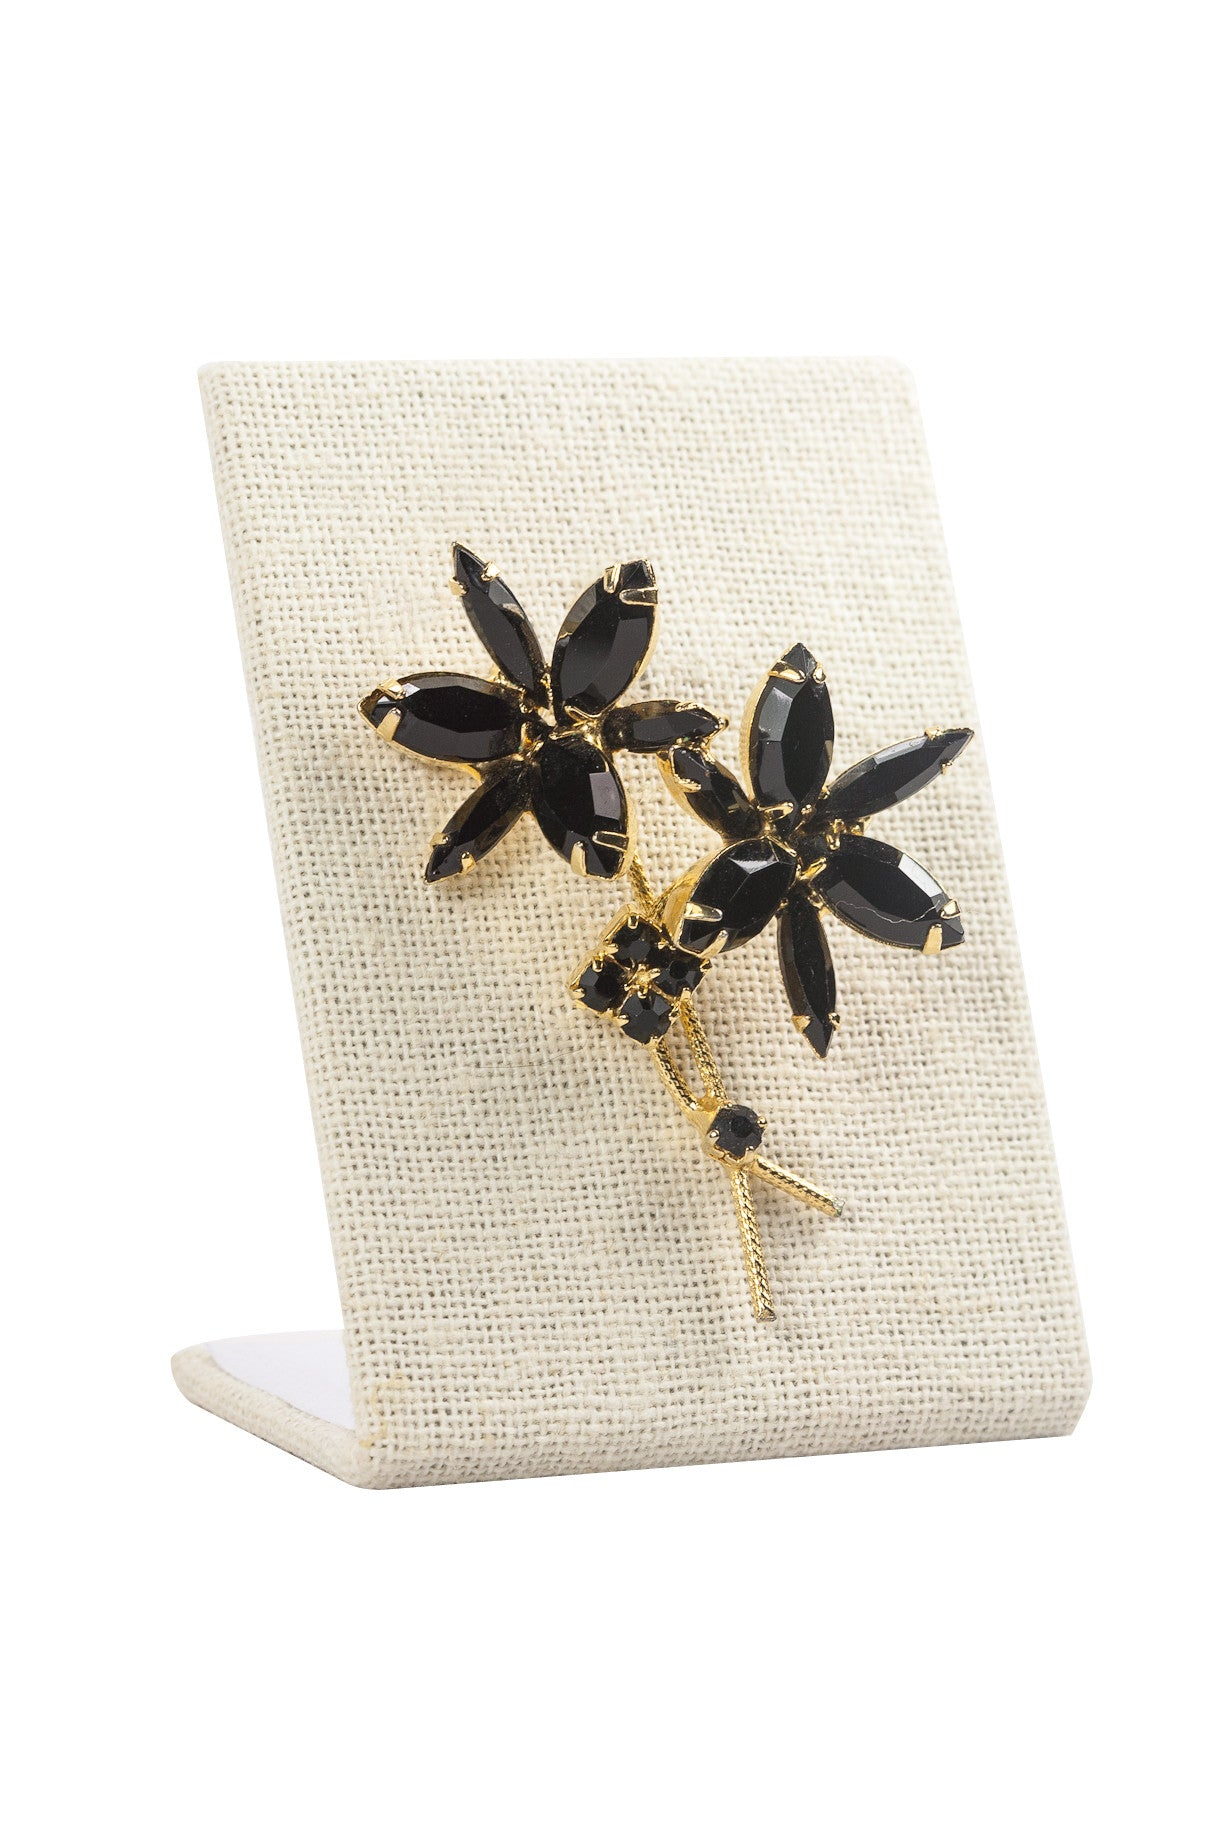 60's__Vintage__Black Bunches Brooch